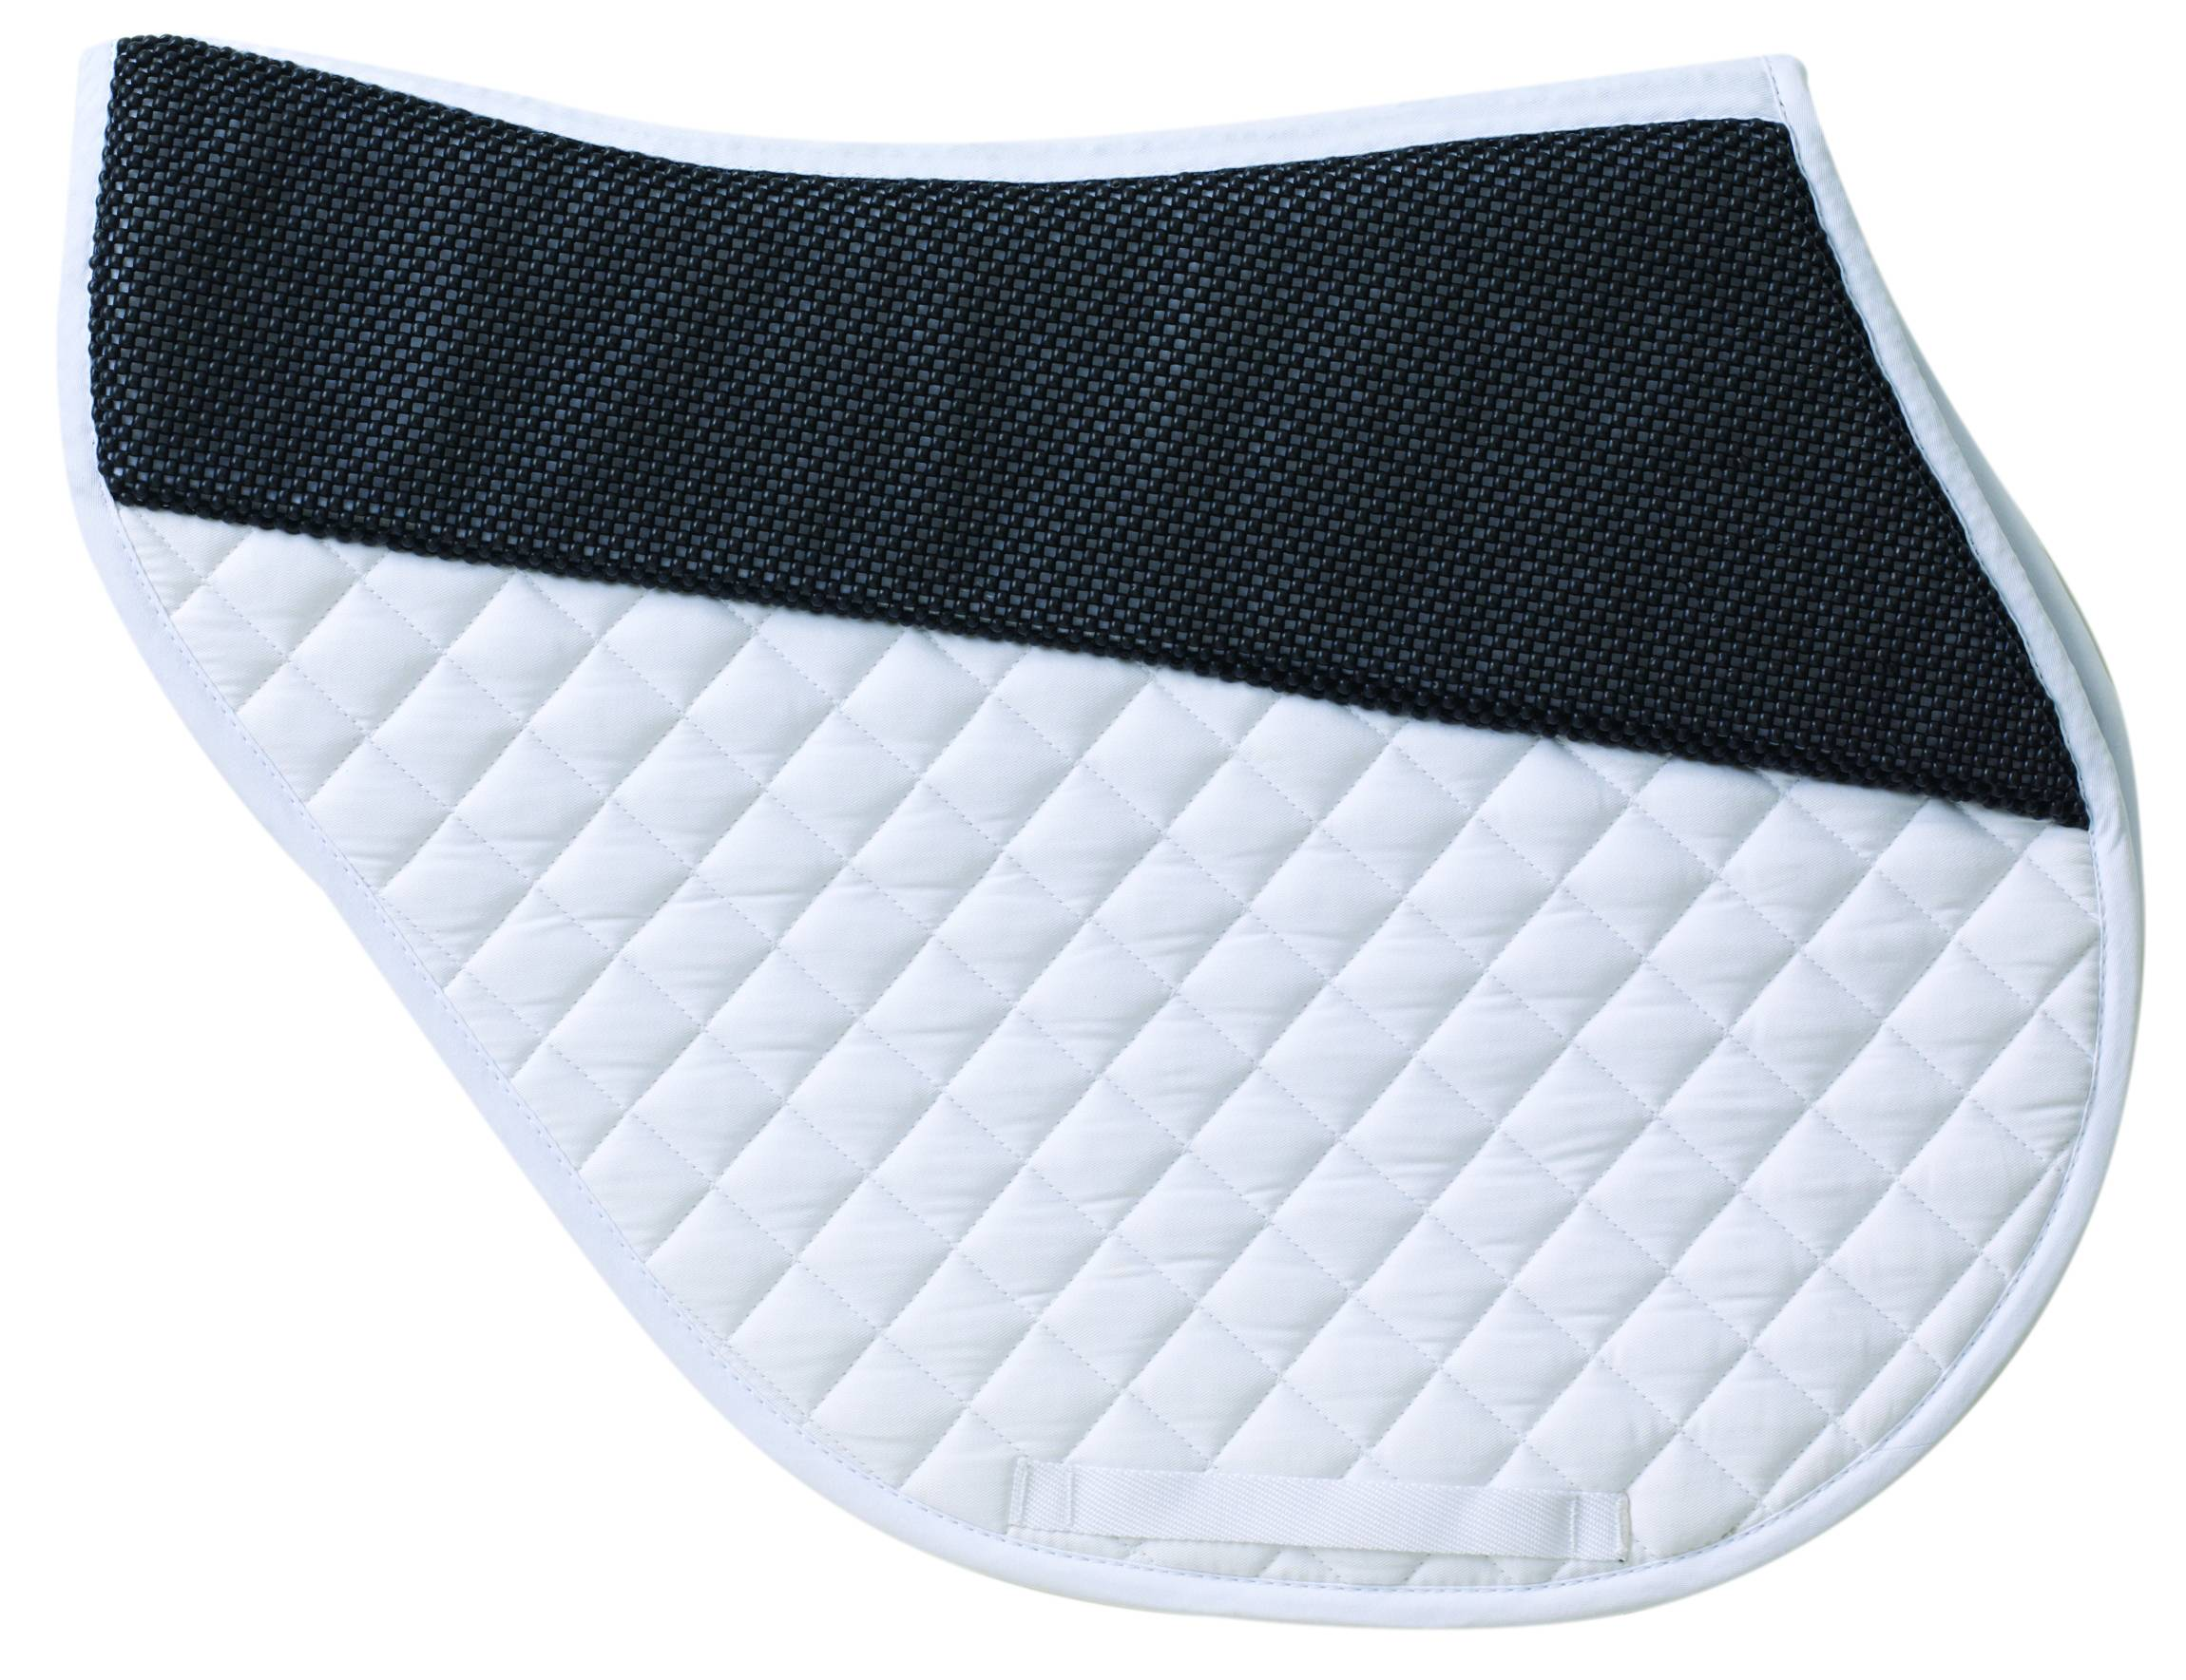 Ovation Coolmax Slip-Grip Event Pad